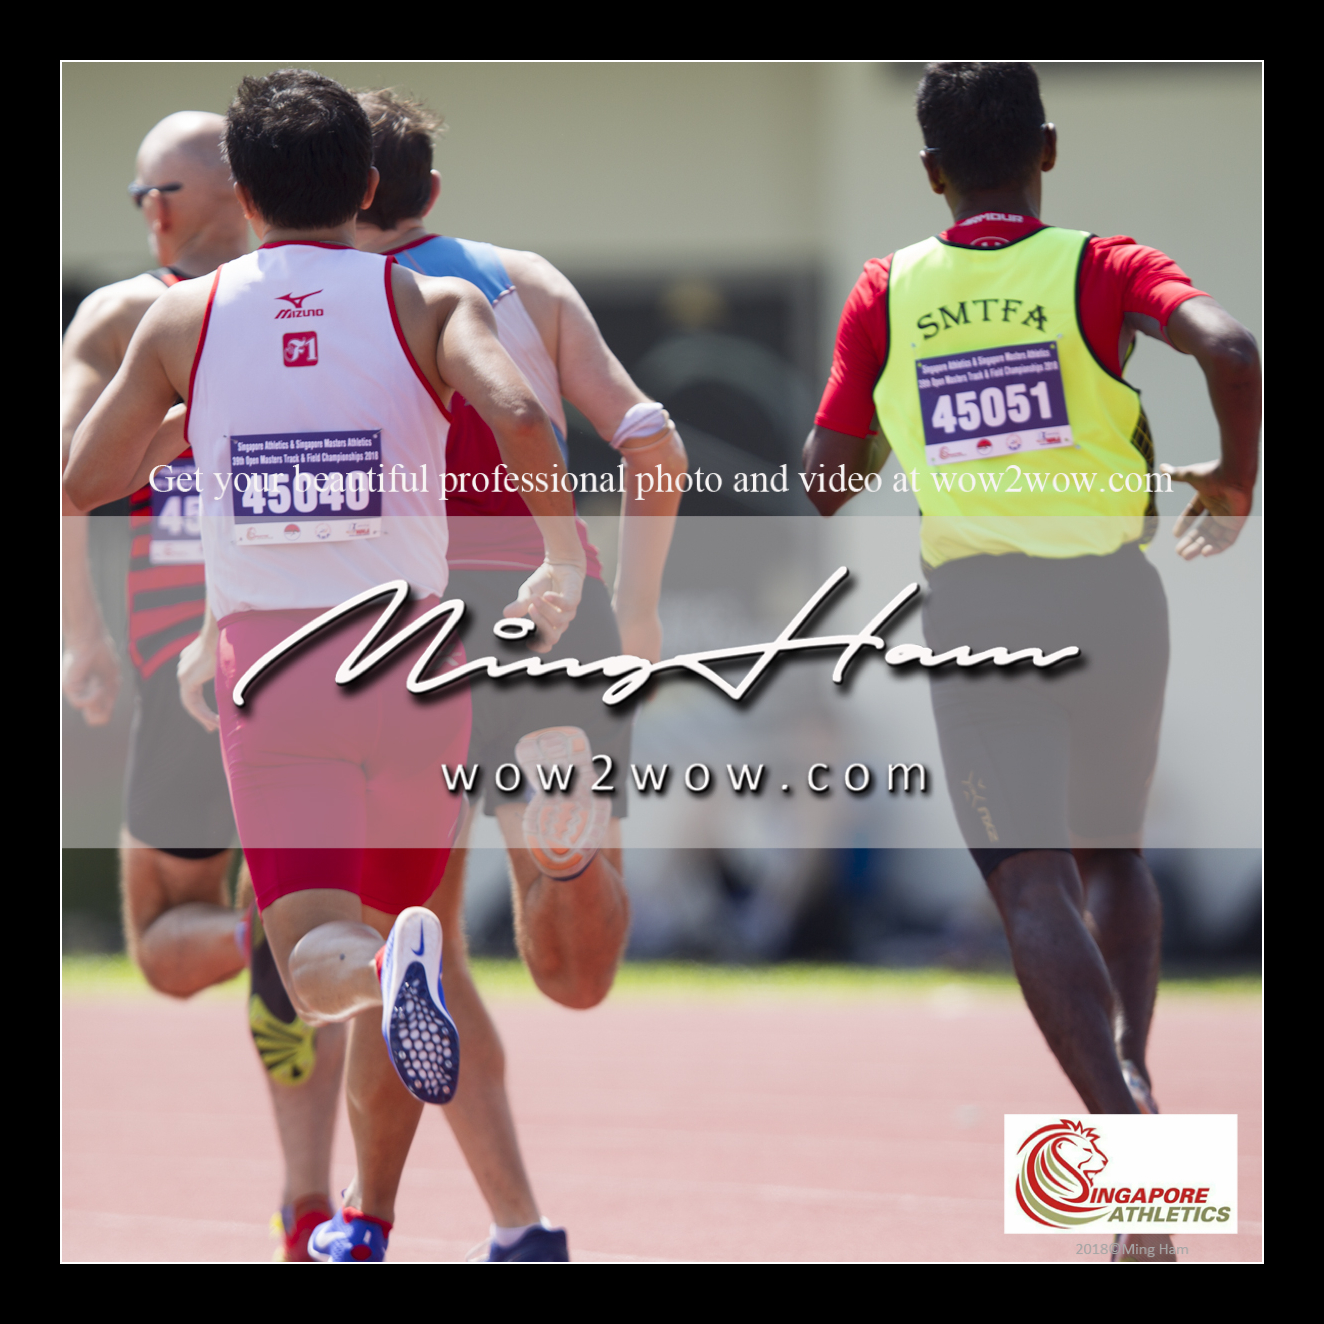 2018_Singapore Masters_0717 [Men M45 800m running back view 45051 SMTFA and 45040 F1 Koh Leong]